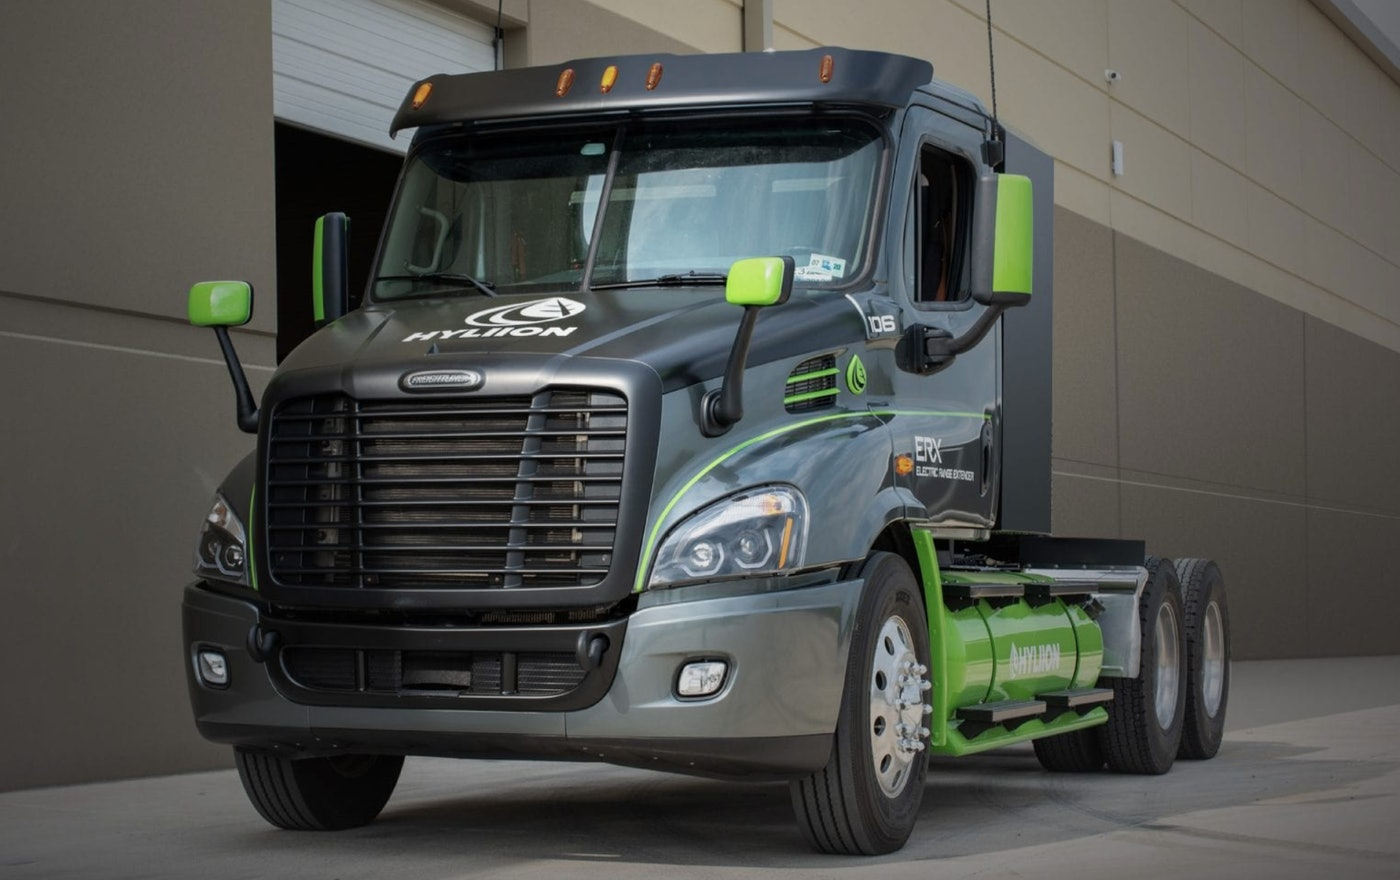 To further reduce its carbon footprint, the battery pack on Hyliion's hybrid Hypertruck Electric Range Extender is charged by an onboard generator that can be fueled by renewable natural gas (RNG).